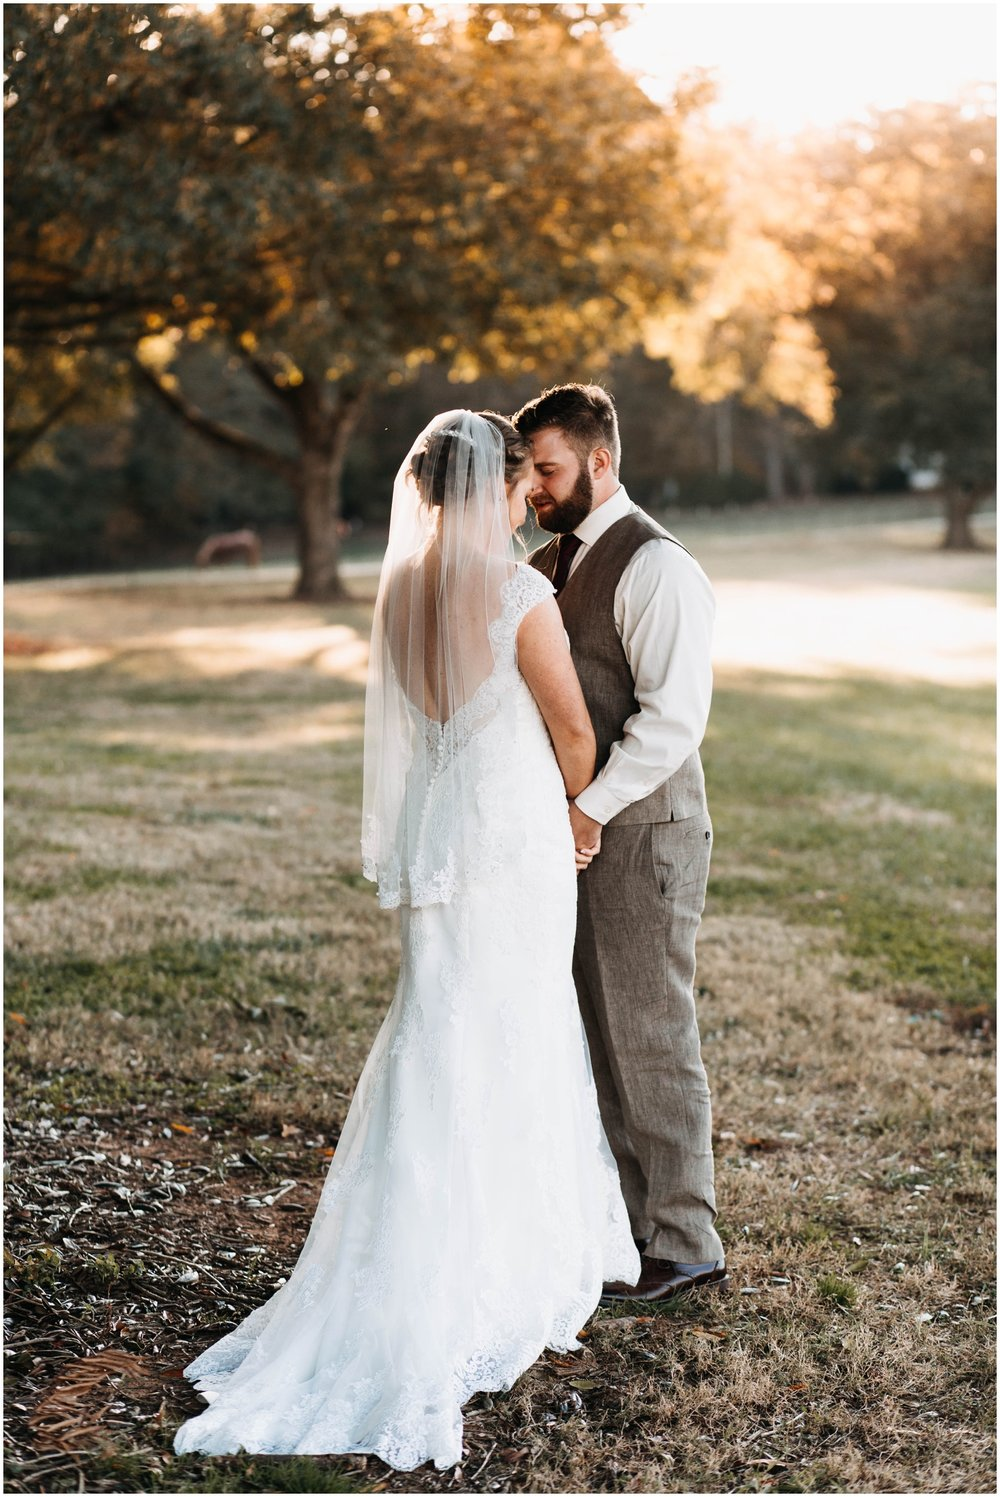 Jess+Dan_rustic_southern_farm_fall_wedding_charlotte_north carolina_taylor powers_0188.jpg